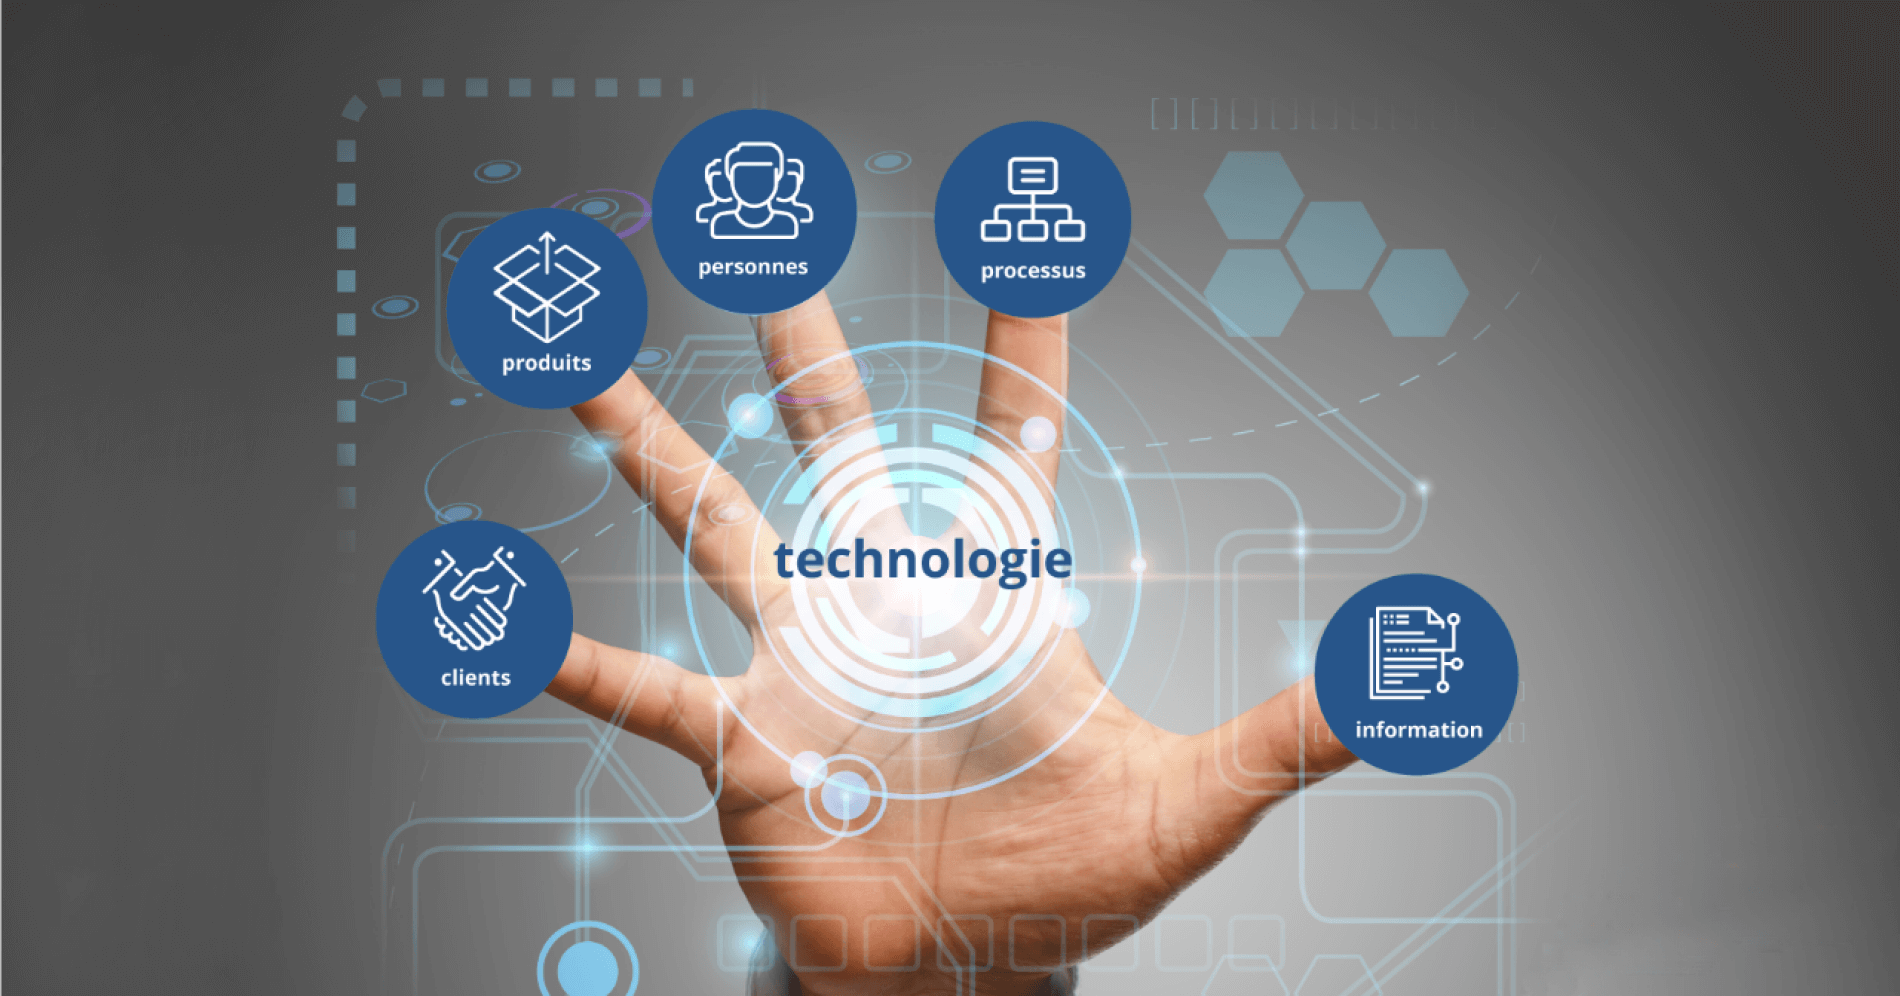 Systeme d'archivage et de communication d'images Marche part, Innovations technologiques, segmentation and taille|GE Healthcare, Koninklijke Philips NV, FUJIFILM Medical Systems